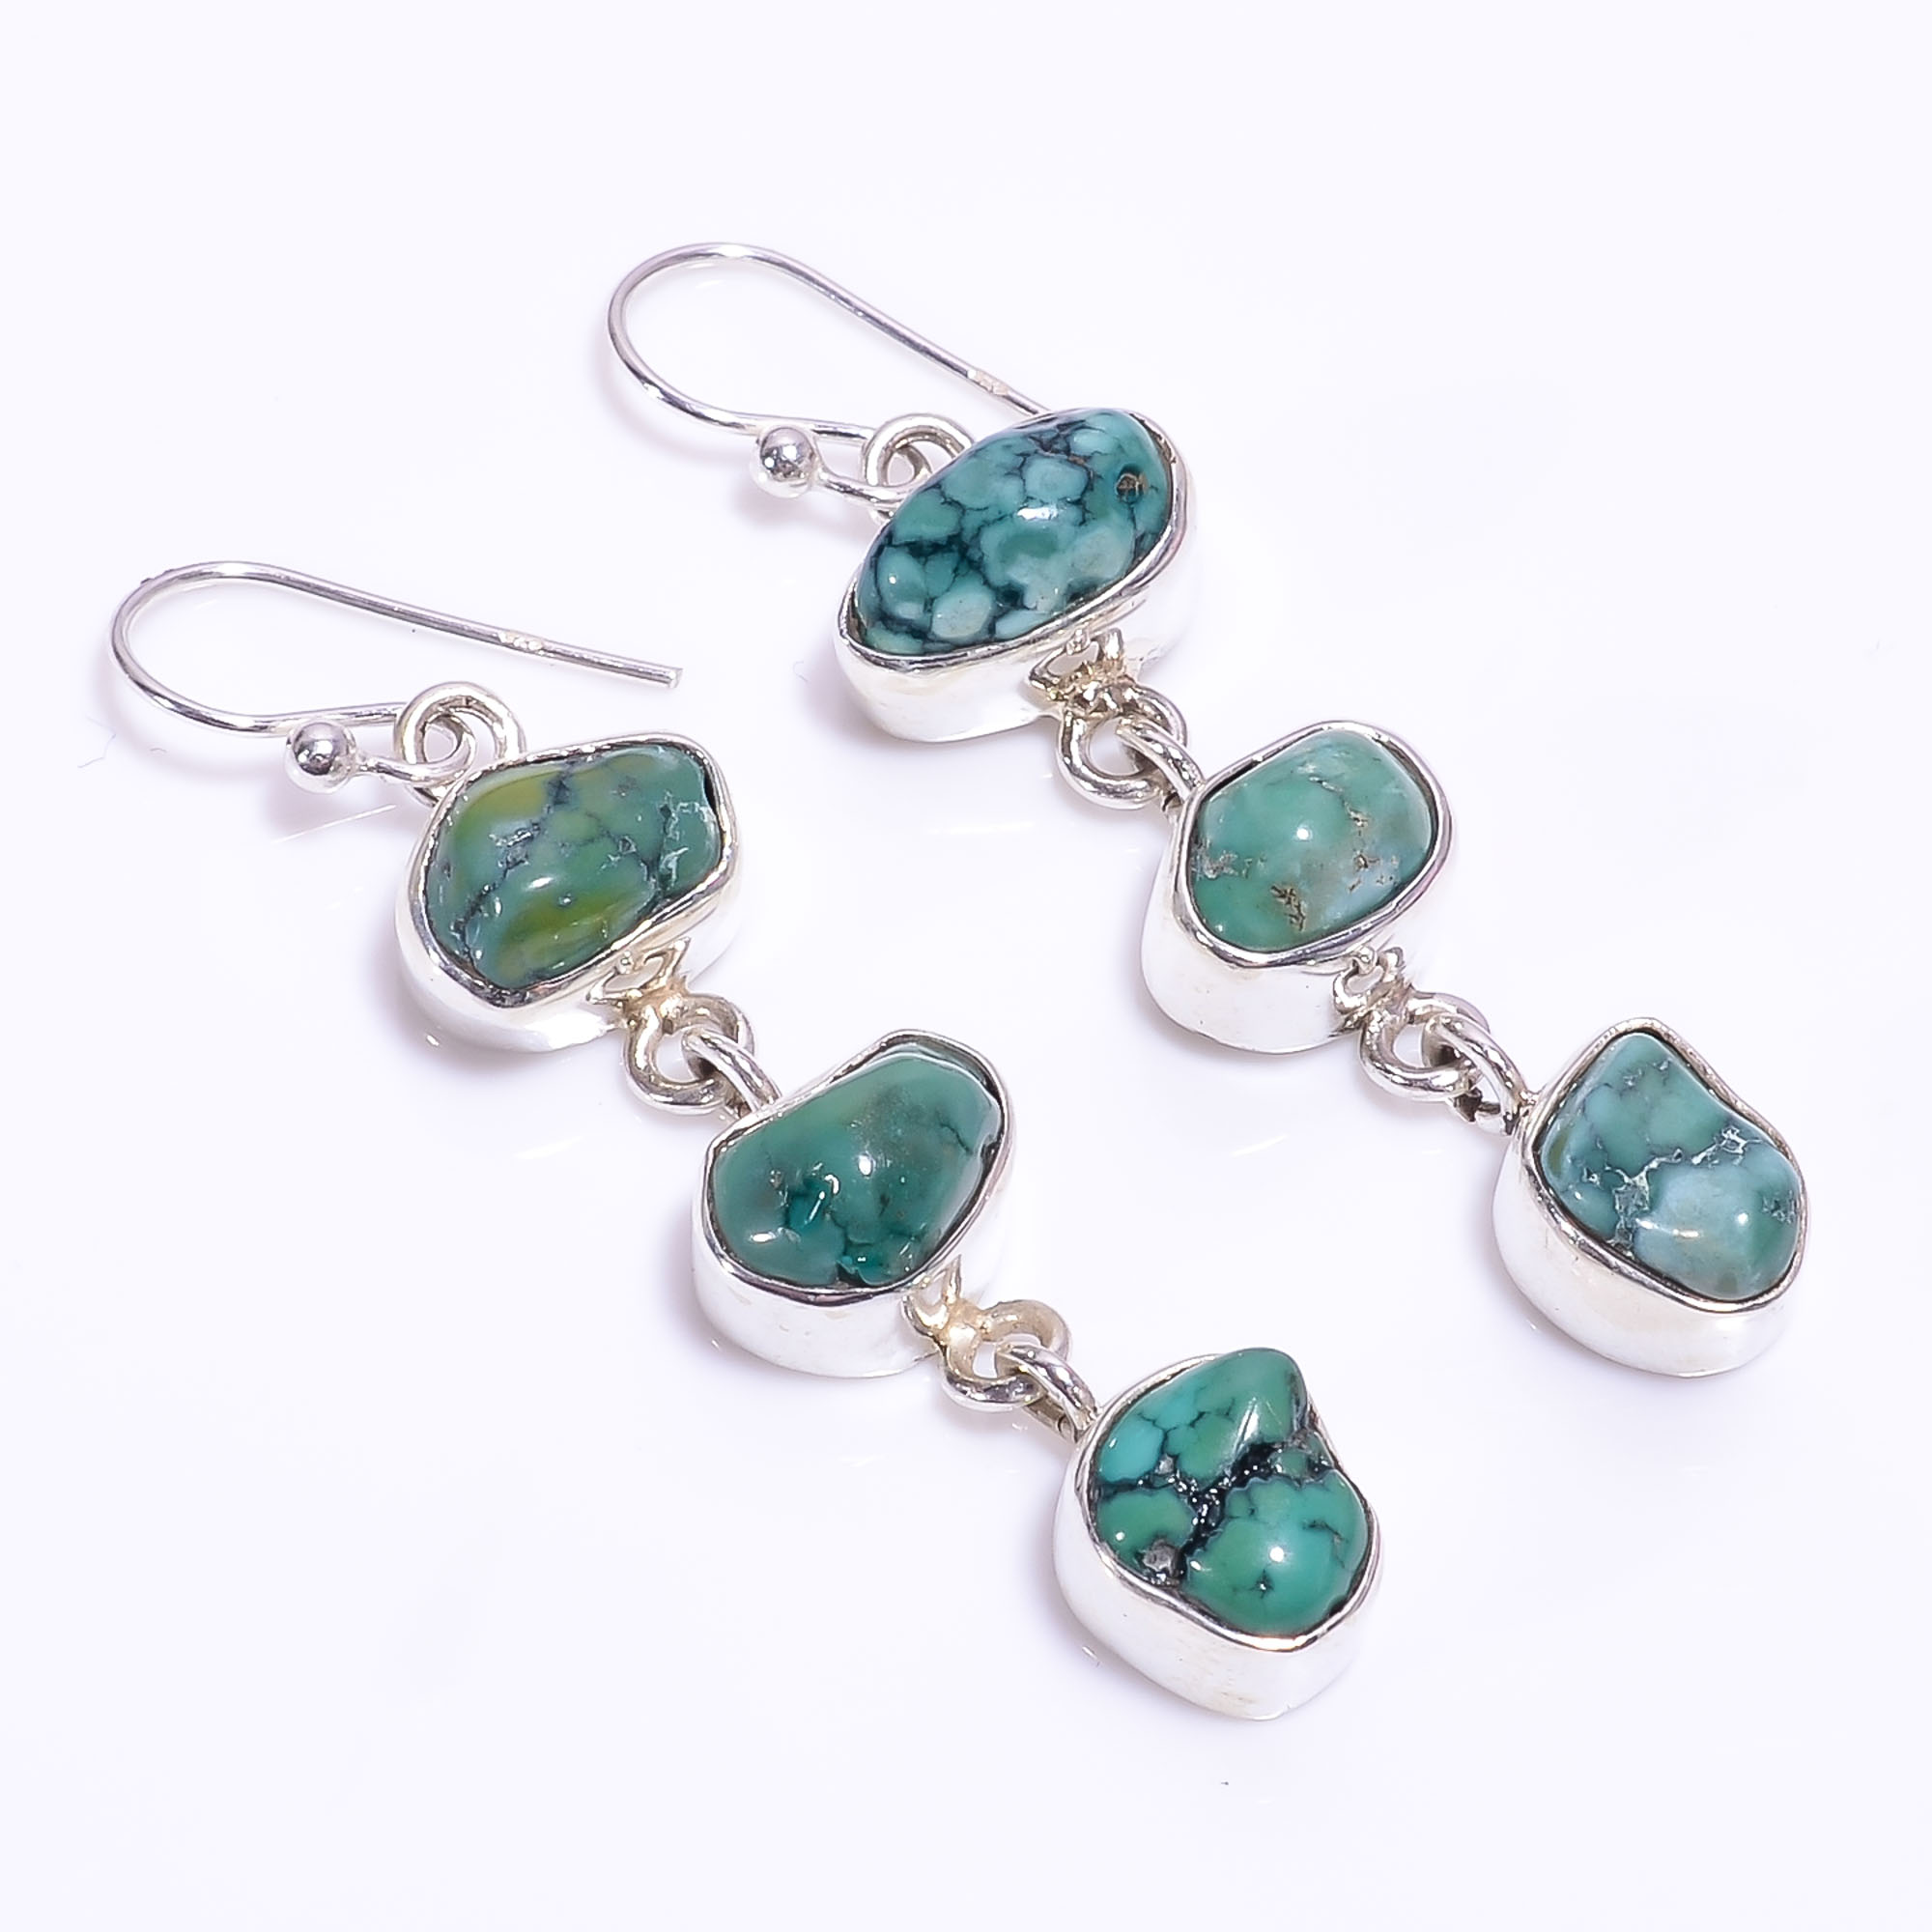 Turquoise Raw Gemstone 925 Sterling Silver Earrings